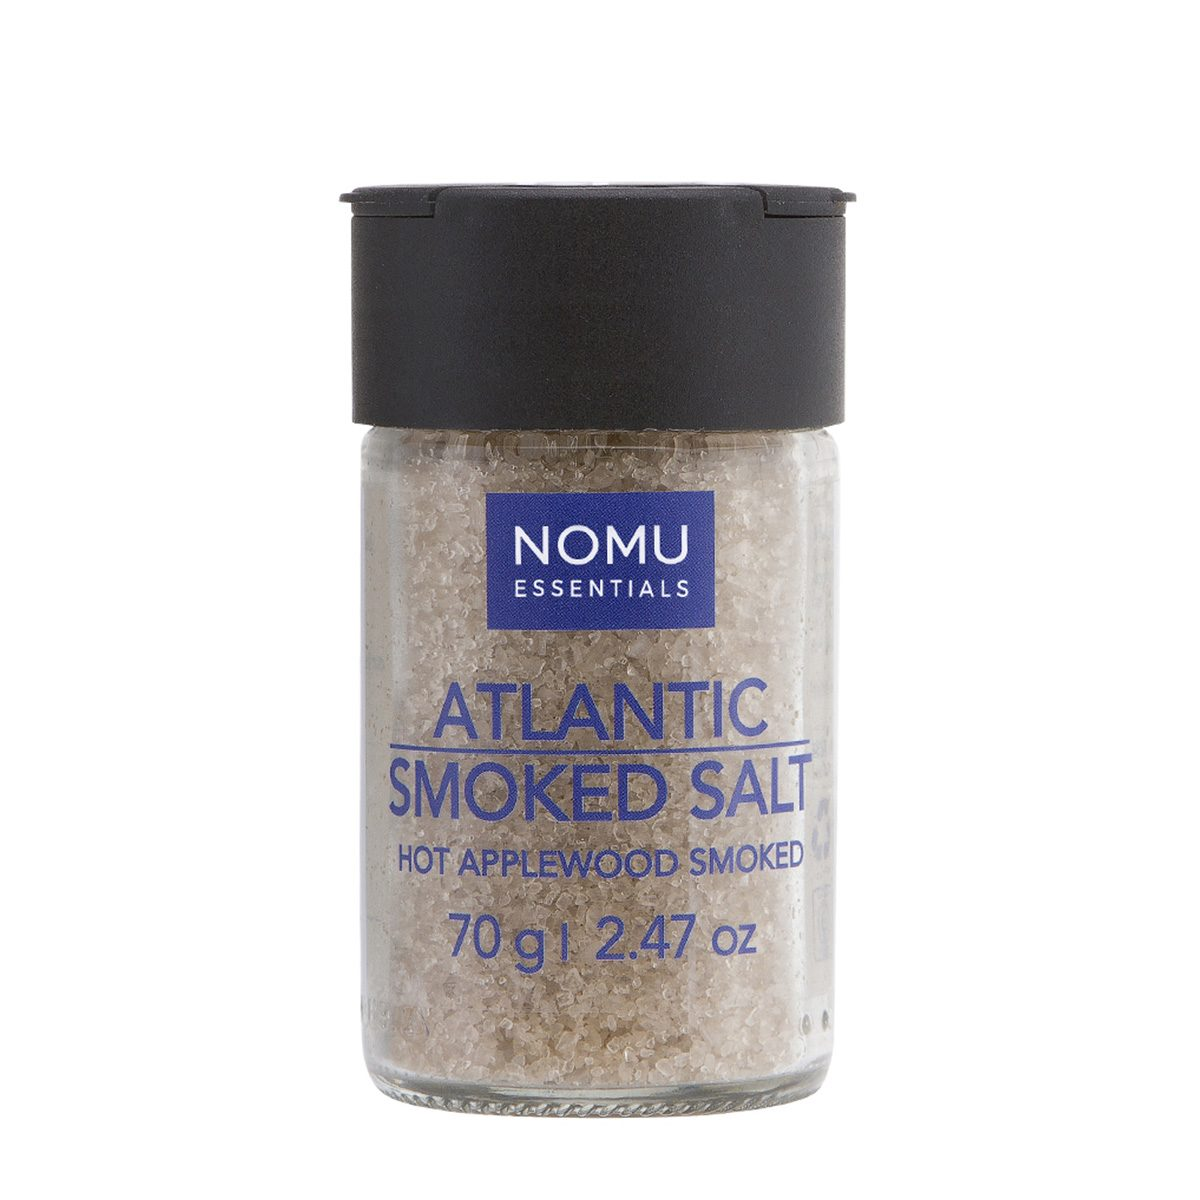 Atlantic-Smoked-Salt